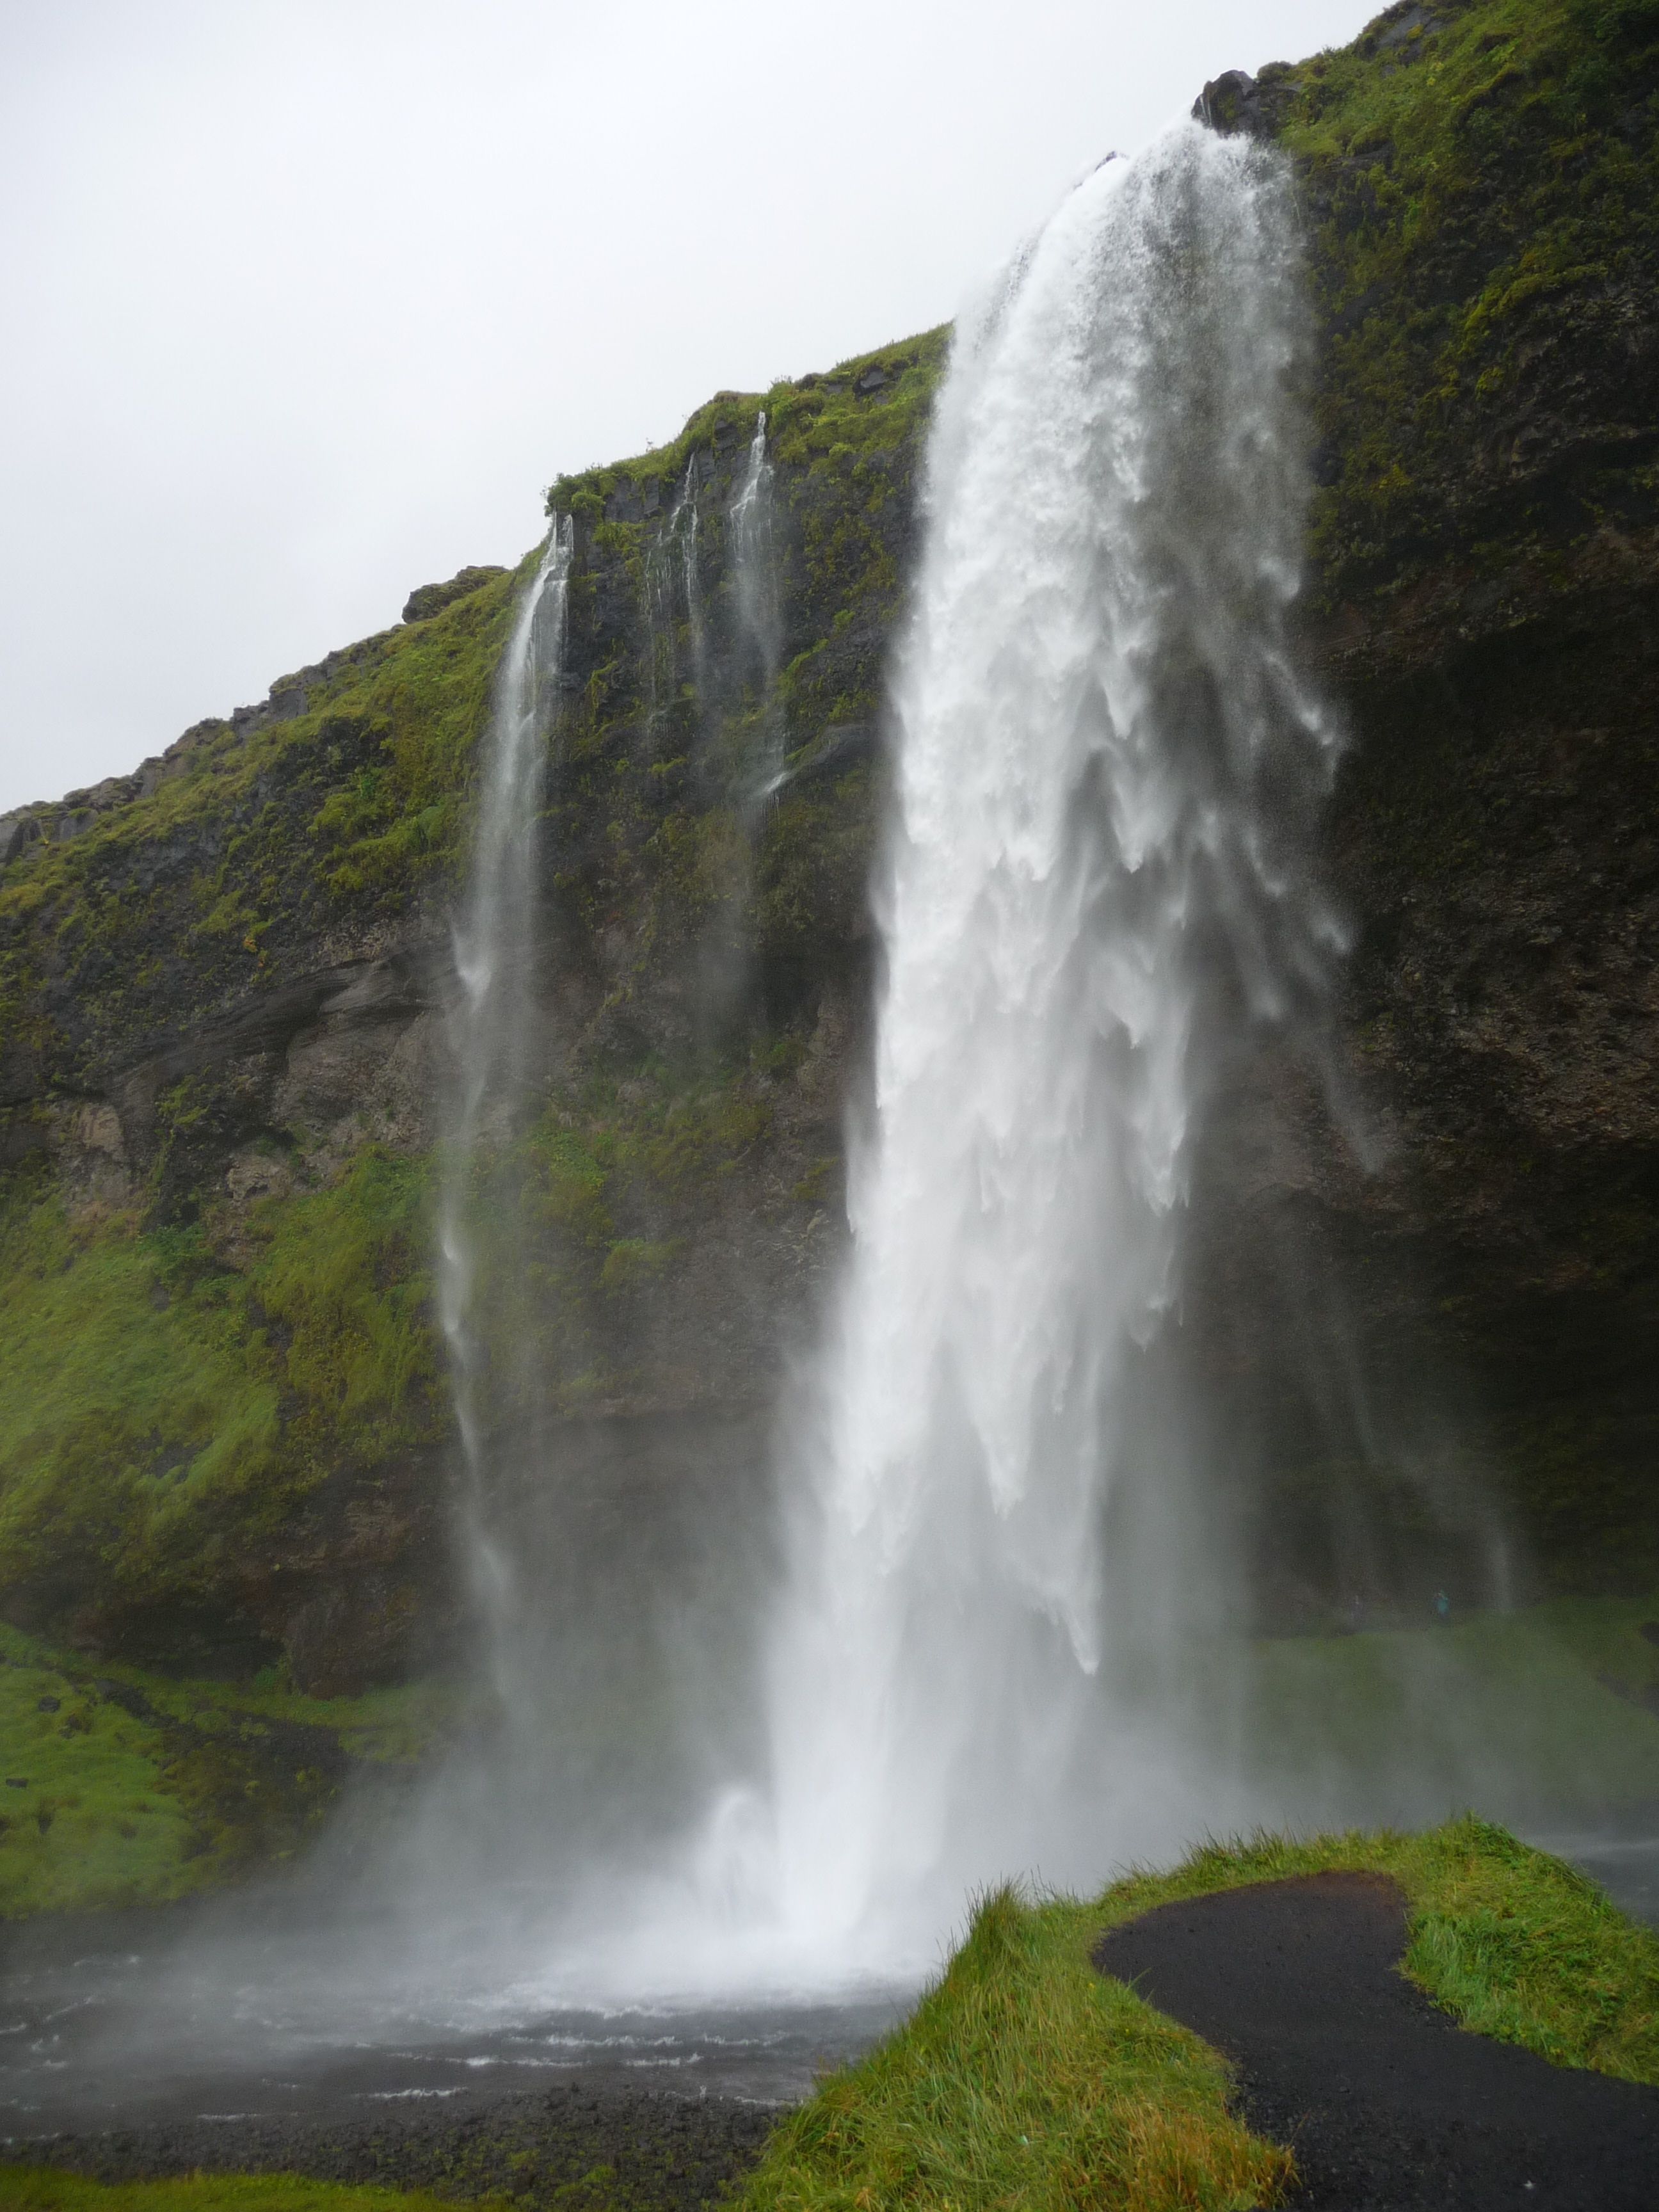 Another waterfall!